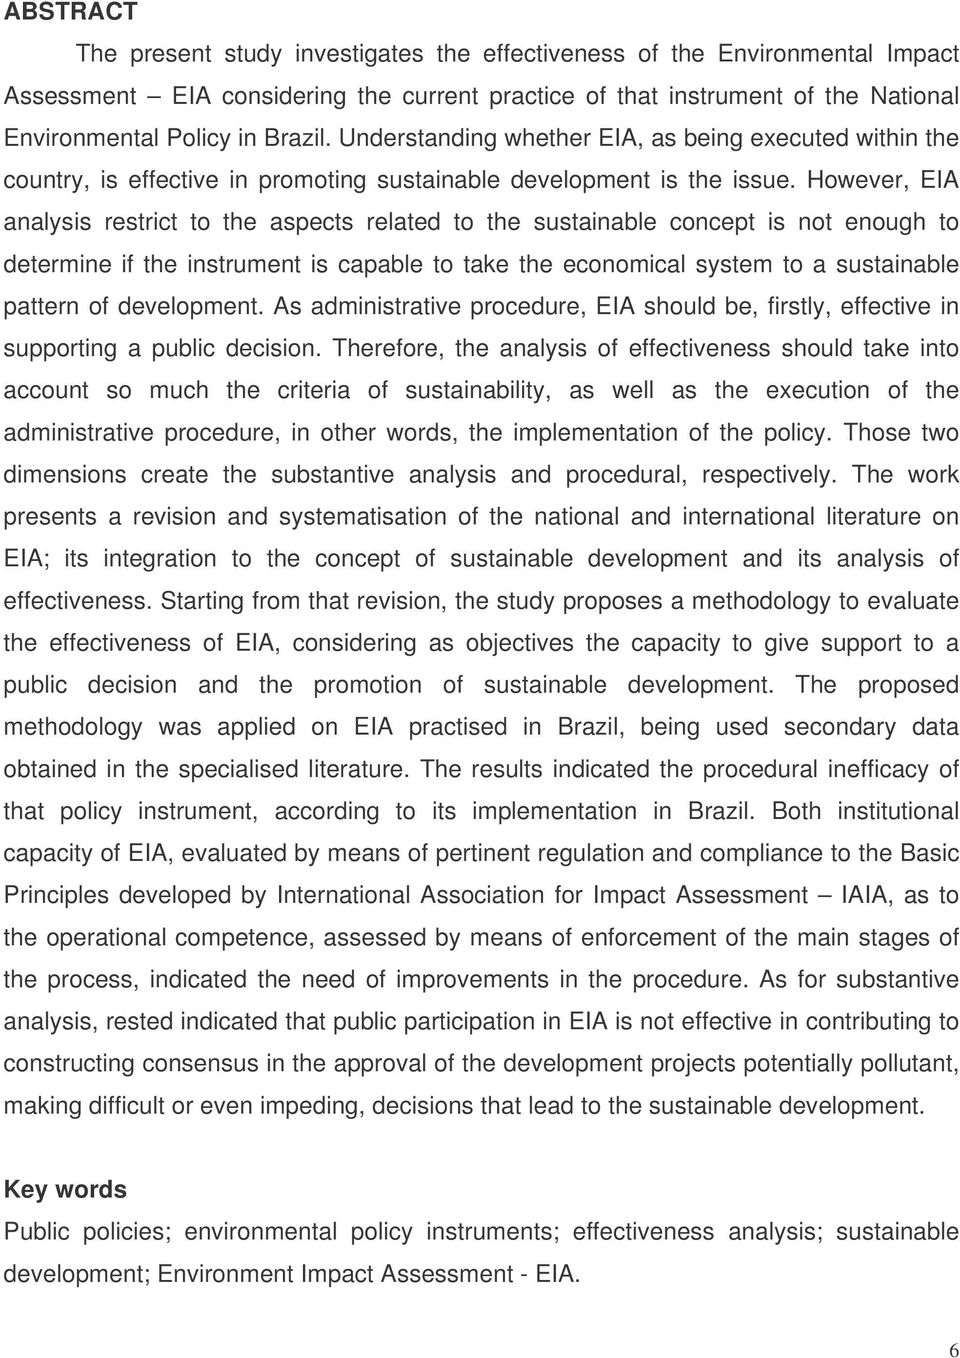 However, EIA analysis restrict to the aspects related to the sustainable concept is not enough to determine if the instrument is capable to take the economical system to a sustainable pattern of